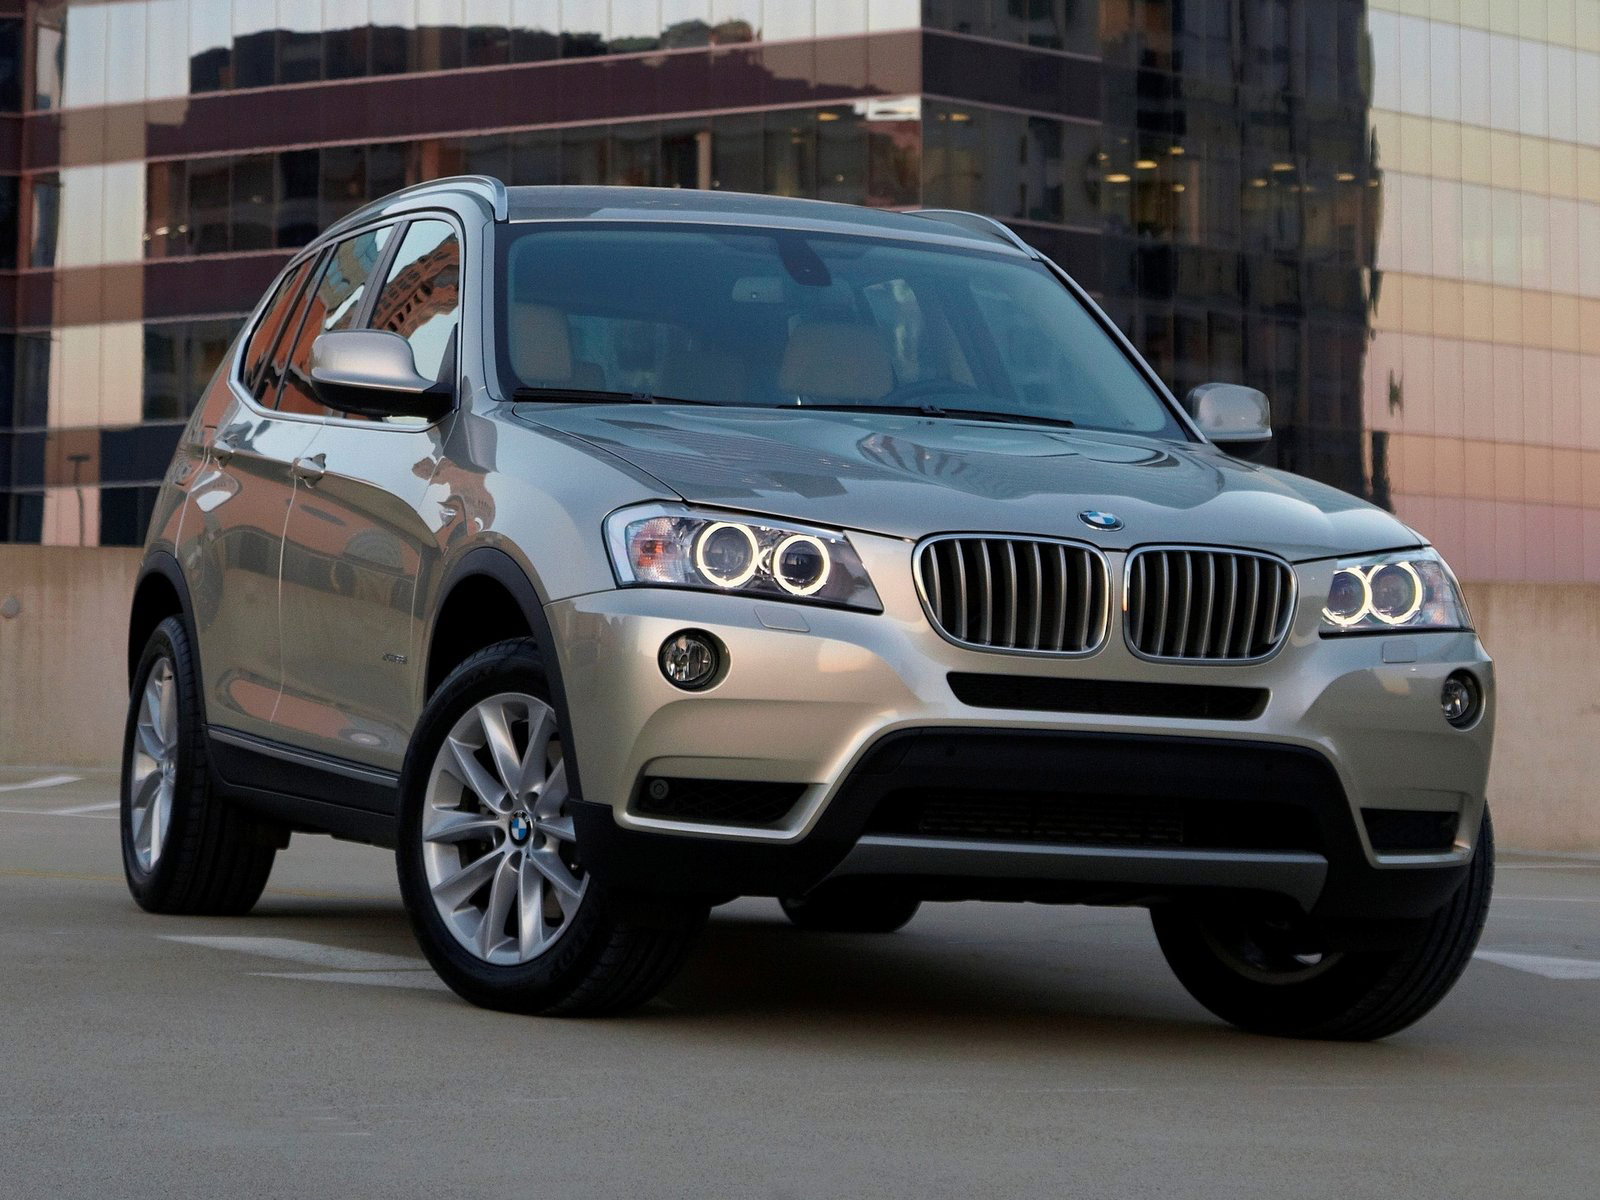 2011 bmw x3 xdrive35i car accident lawyers info pictures. Black Bedroom Furniture Sets. Home Design Ideas